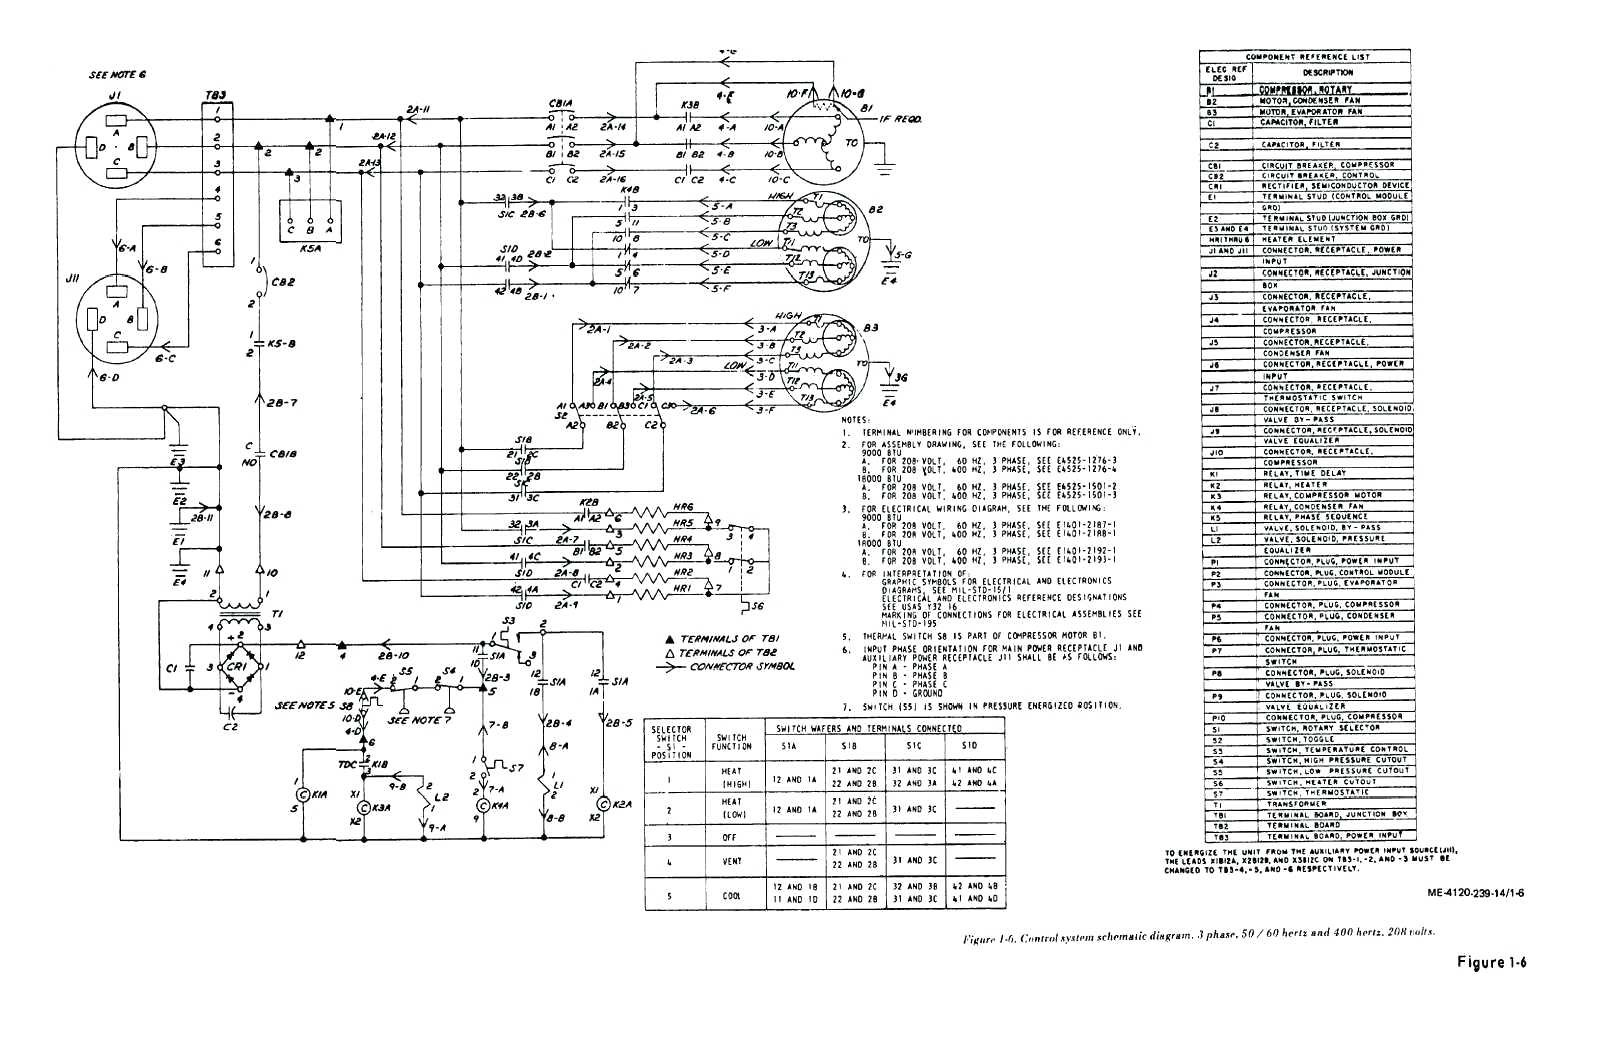 Full Size of Motor Control Wiring Diagrams 3 Phase Circuit Diagram Database Archived Wiring